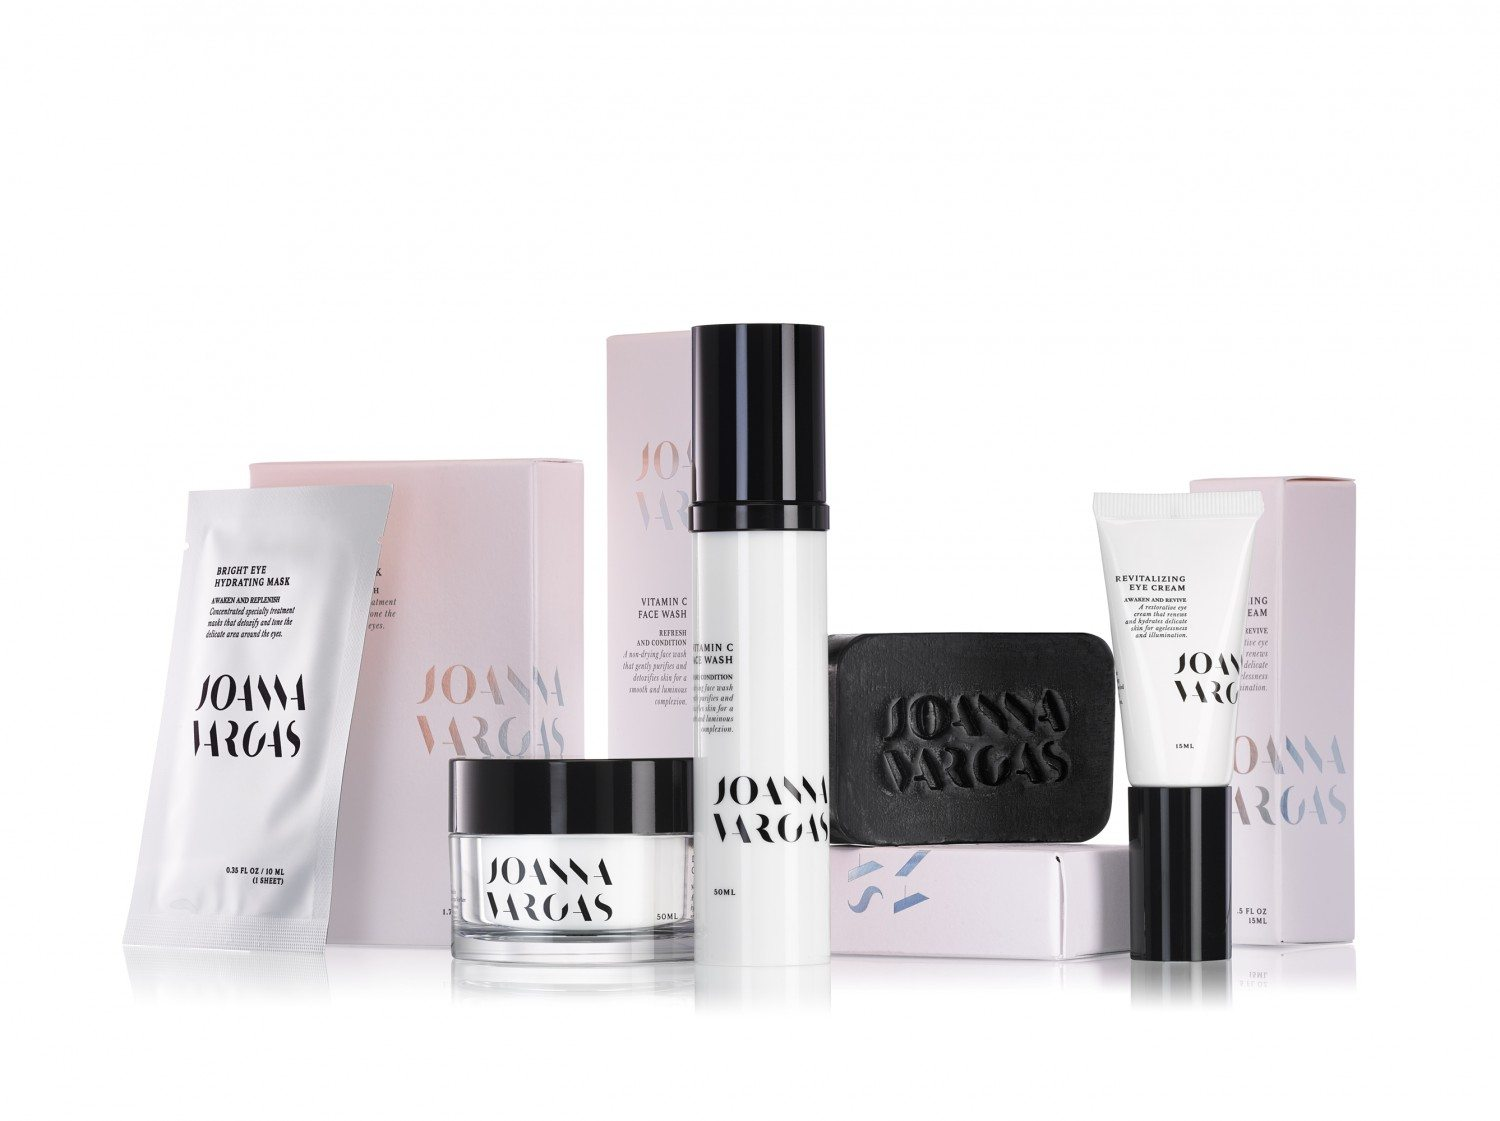 Joanna Vargas Salon and Skincare Collection Founder Joanna Vargas Talks To Downtown